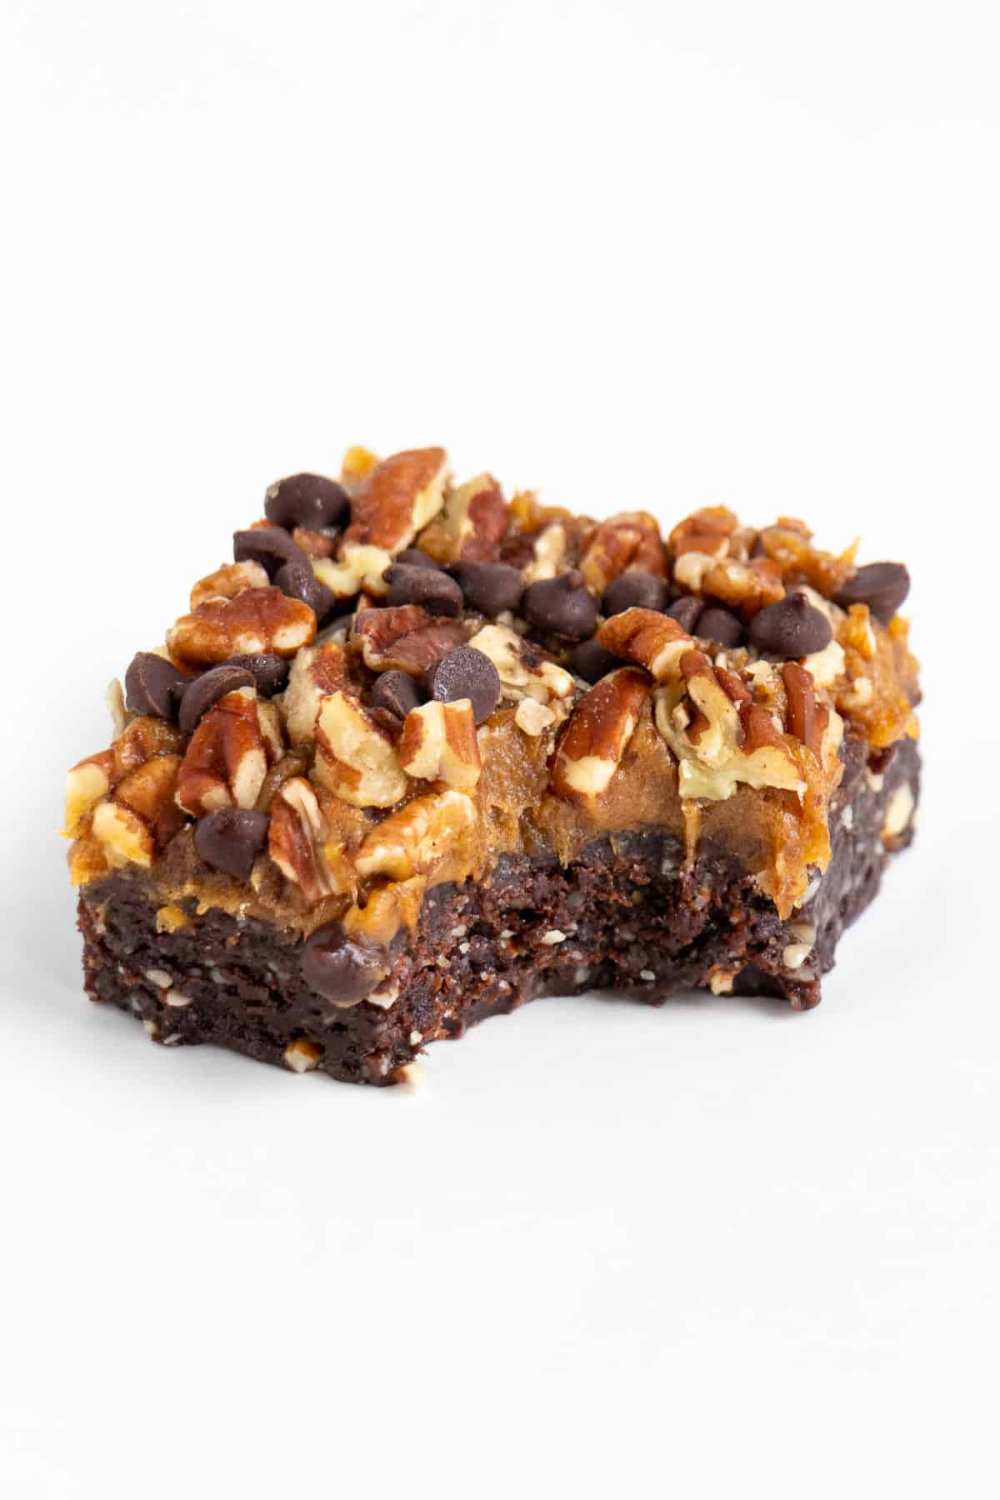 No Bake Turtle Brownies (Vegan, Gluten-Free)